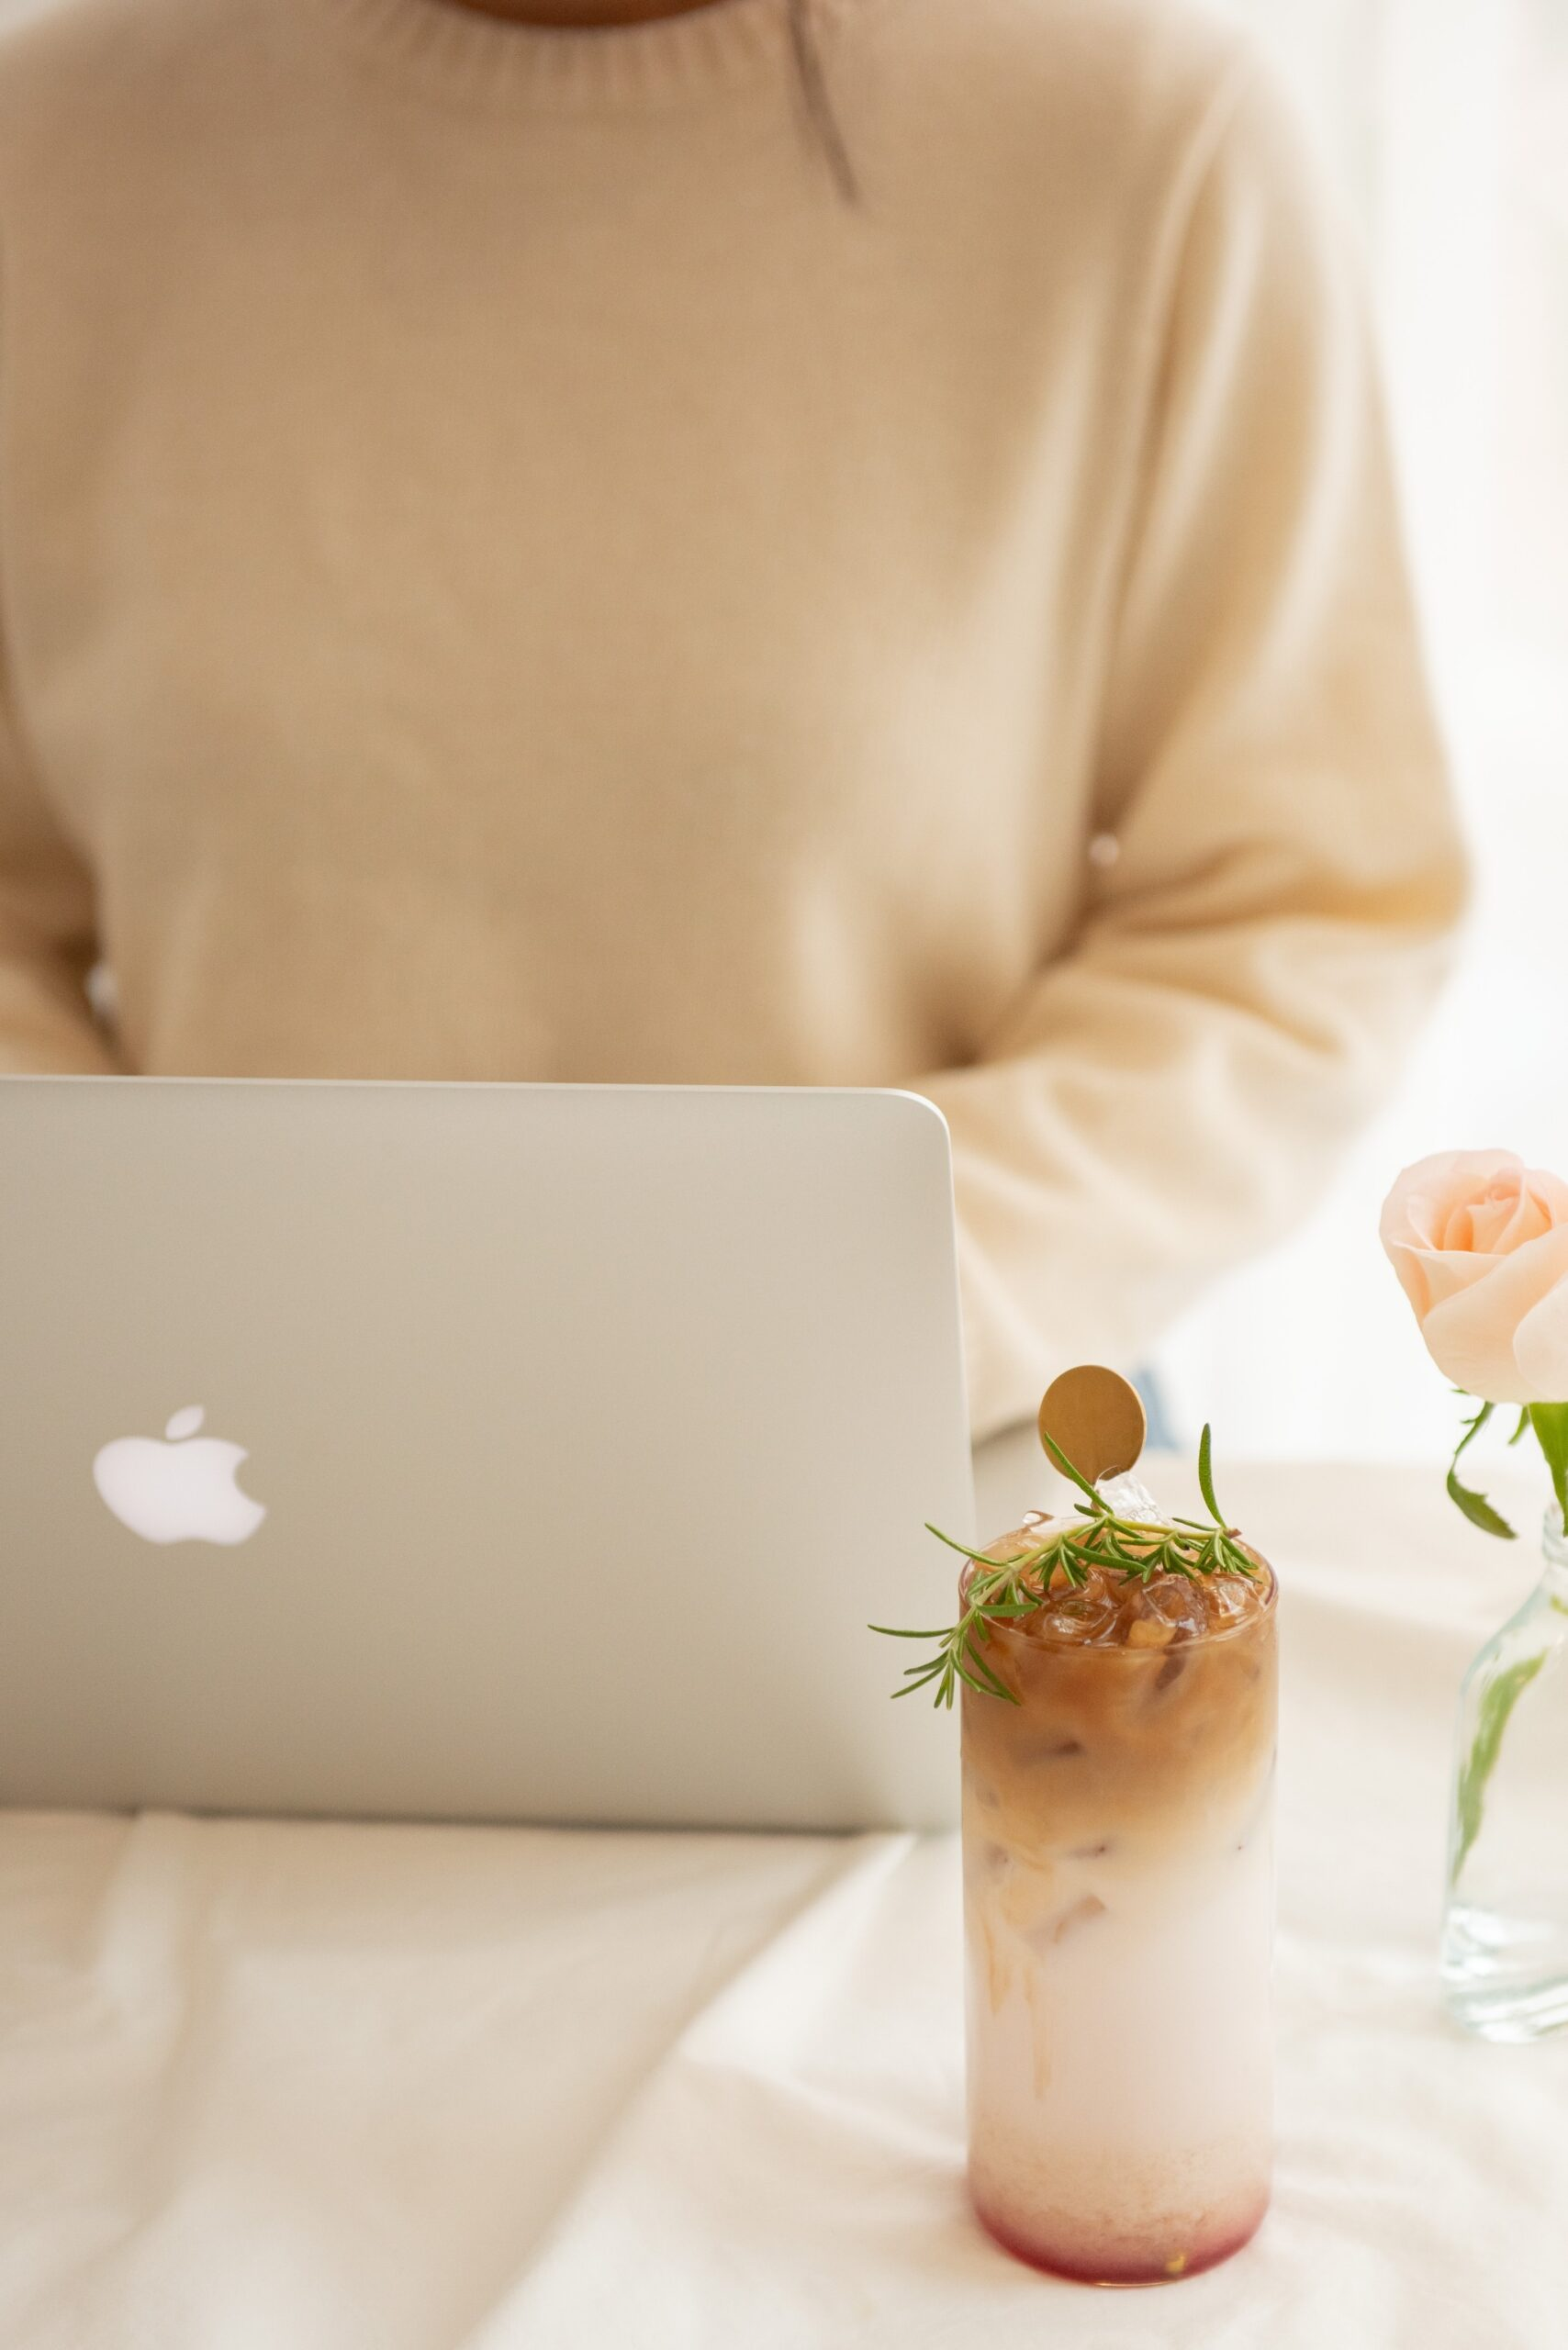 How to make your Online Business or Service Look More Professional. Build brand and services online